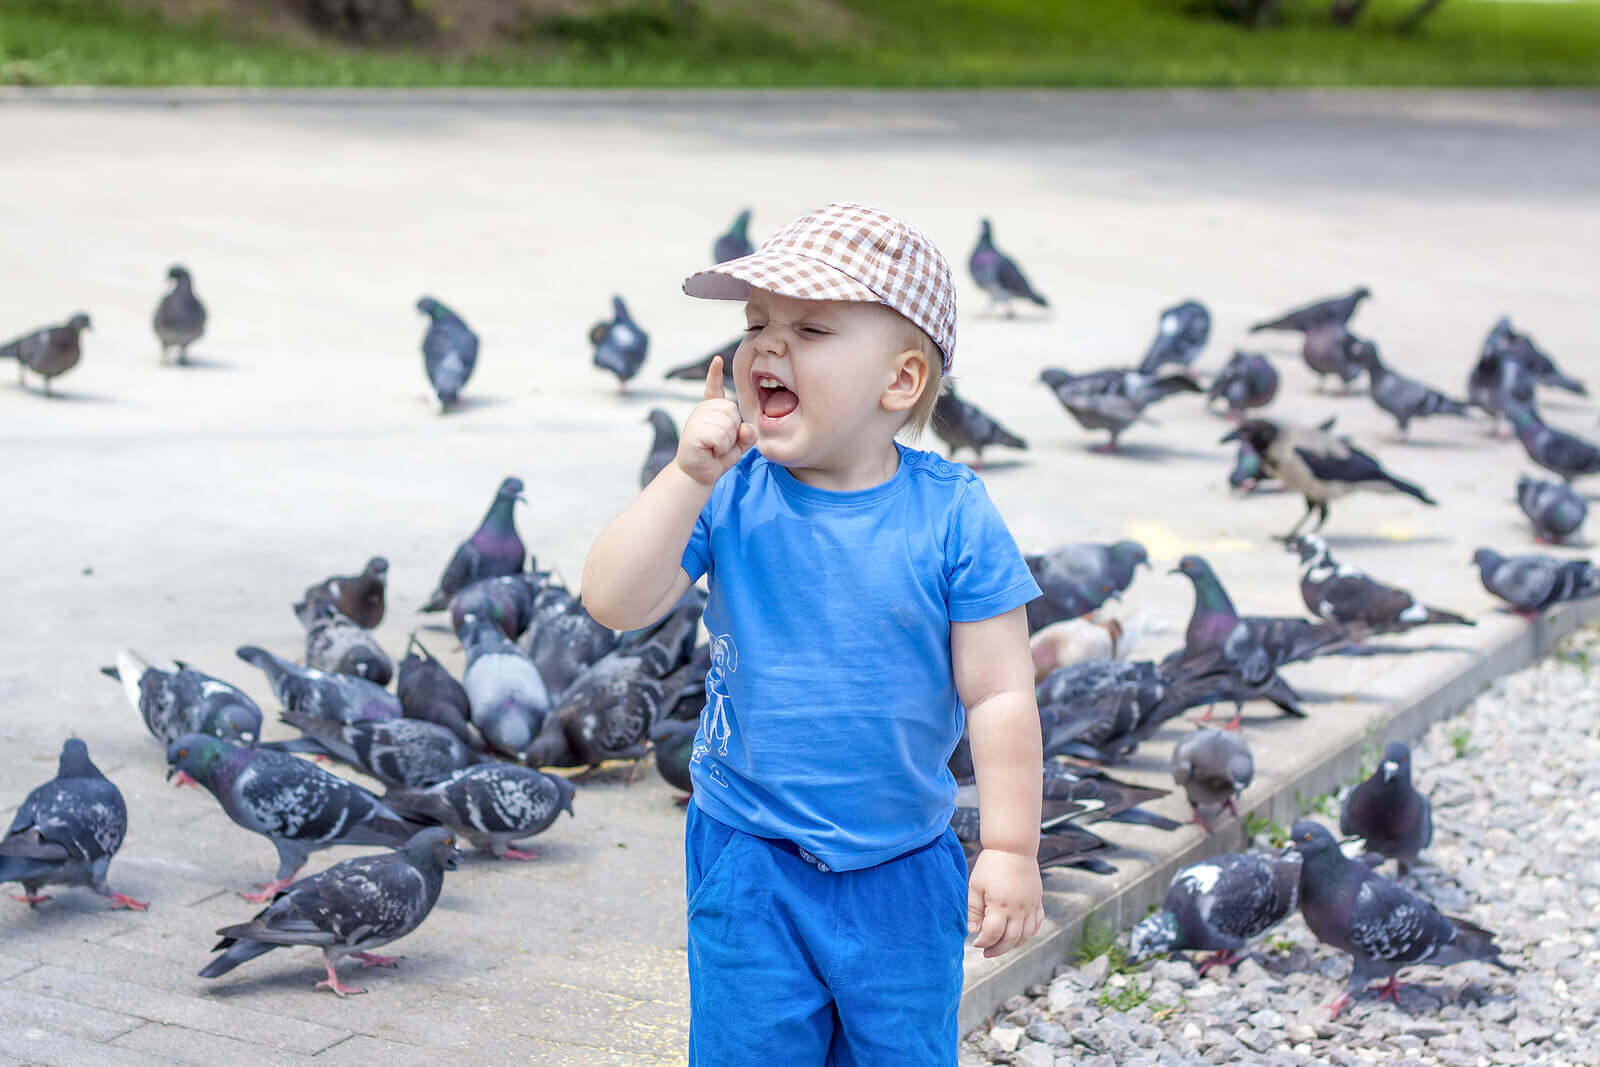 My Child Is Afraid of Birds: What Do I Do?